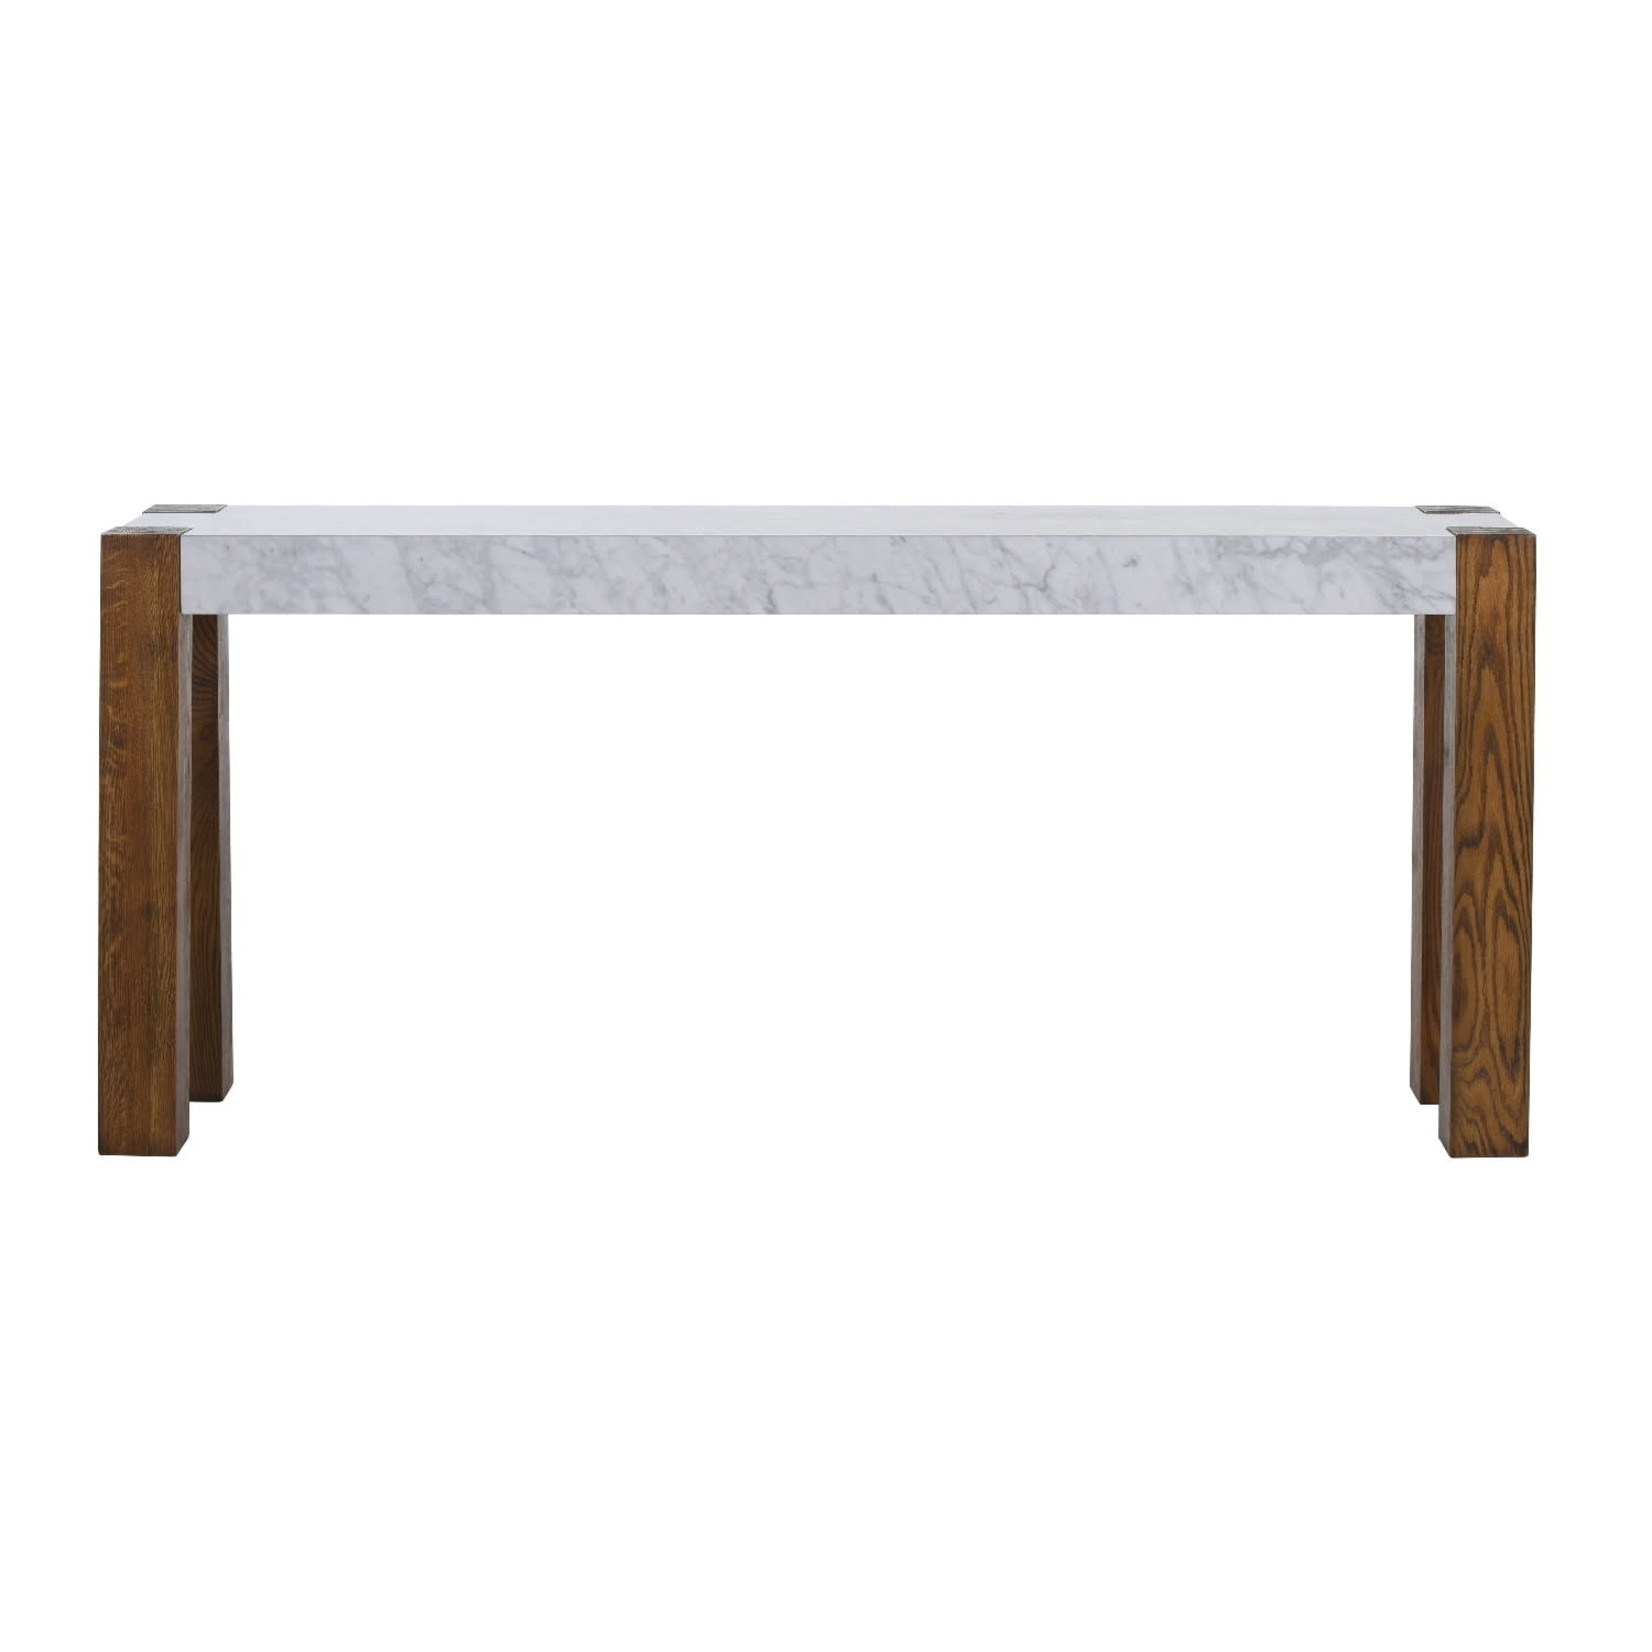 TIMOTHY OULTON CONSOLE JUNCTION